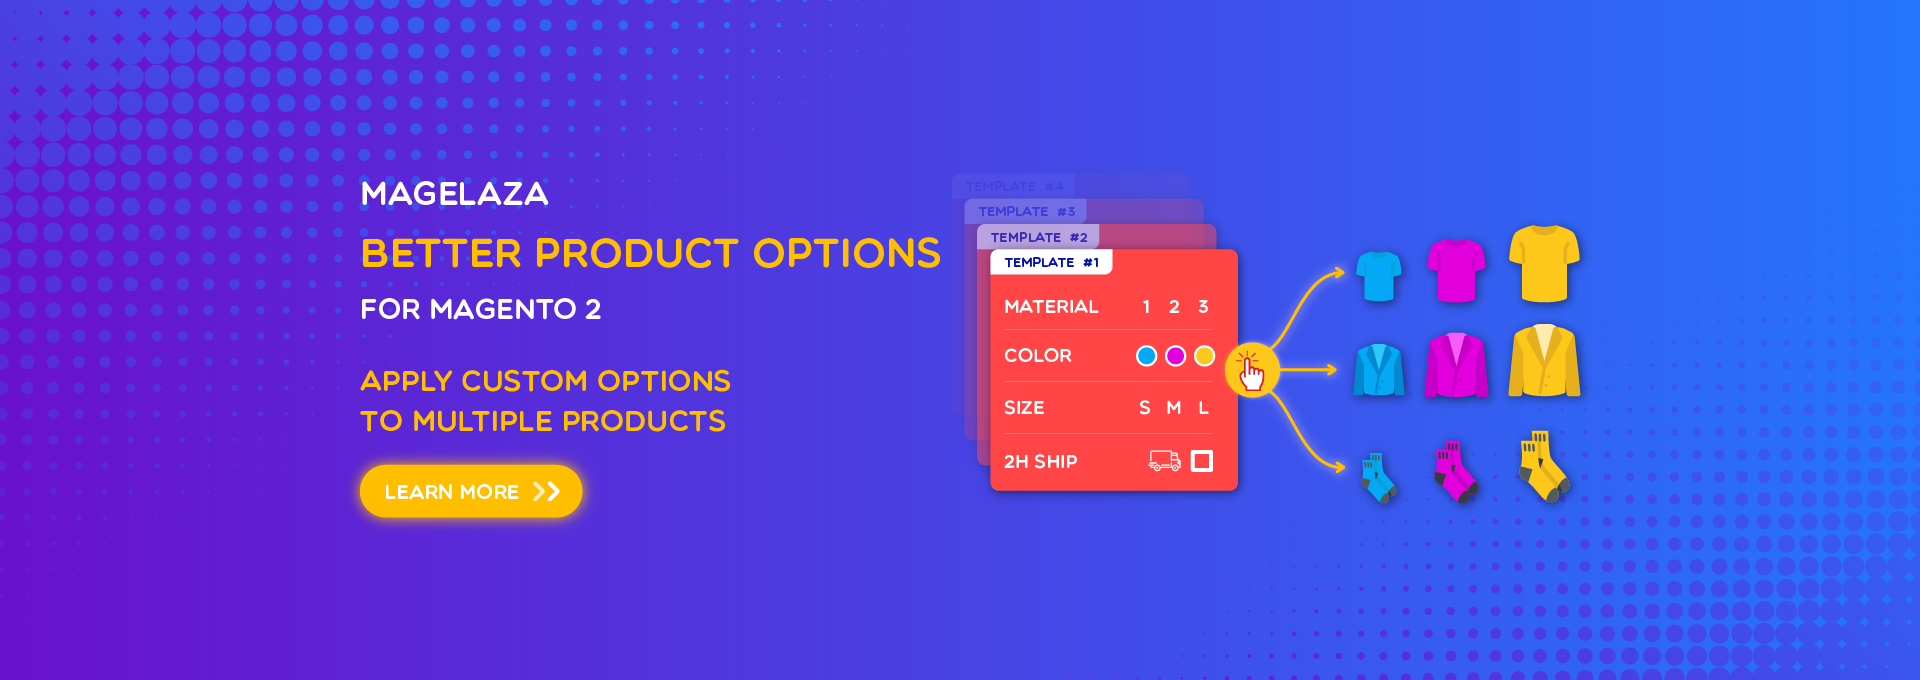 How to customize options flexibly by Magento 2 Better Product Options